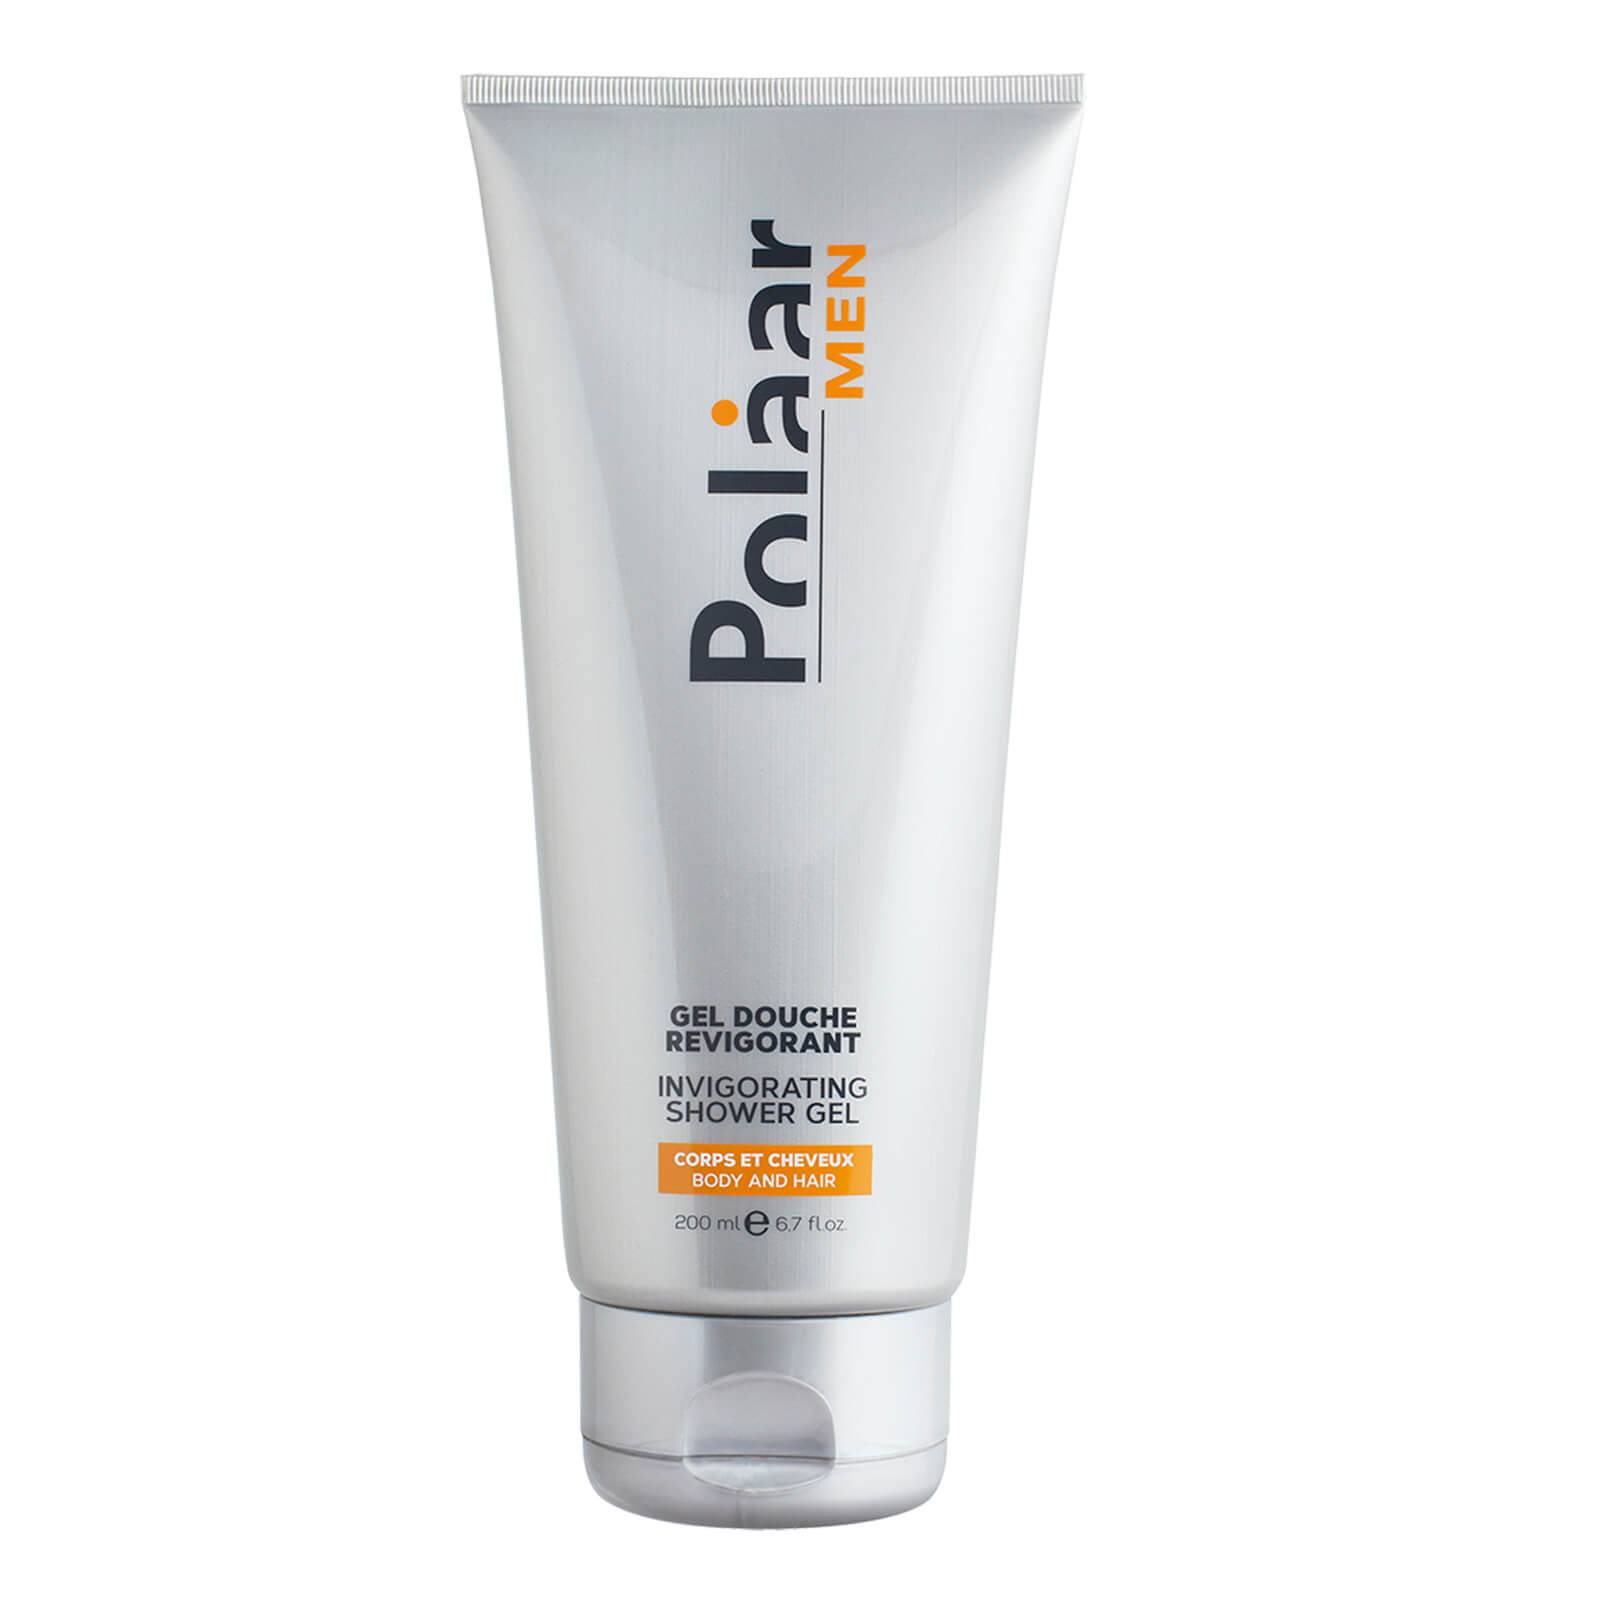 Polaar Gel Douche Revigorant Polaar 200 ml